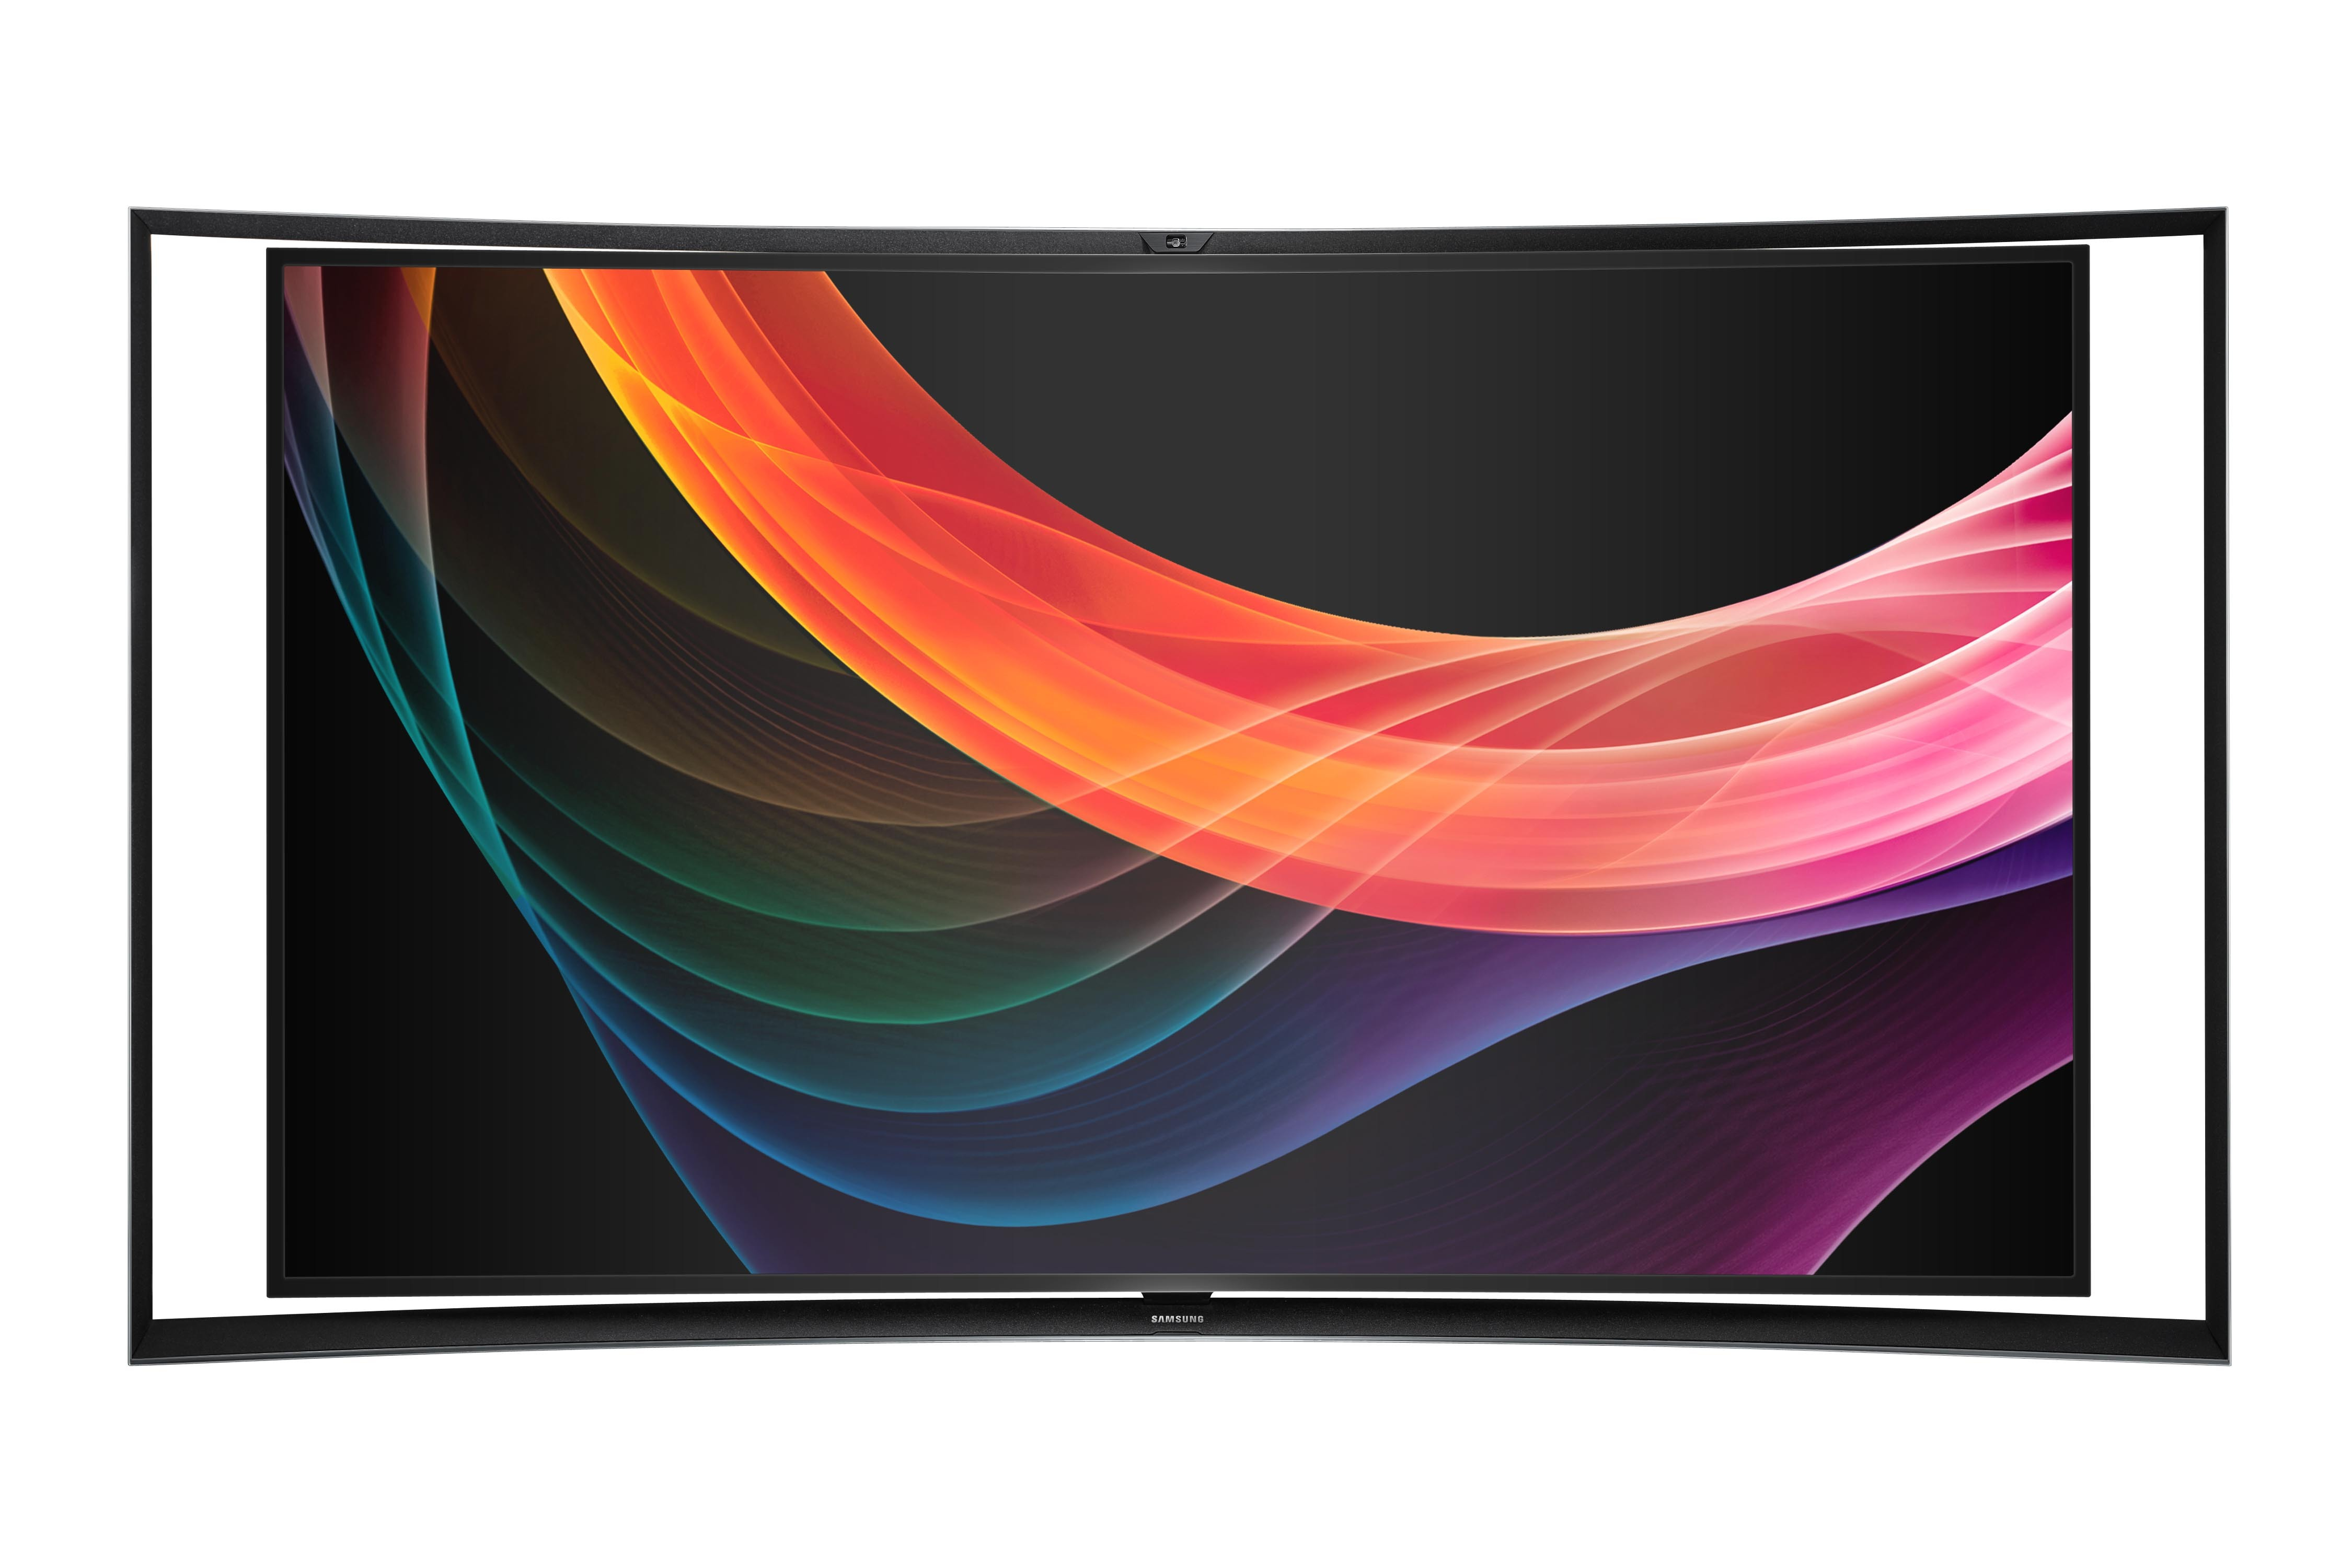 """Samsung launches new 55-inch Curved OLED TV delivering """"Life in Every Pixel."""" (Photo: Business Wire)"""